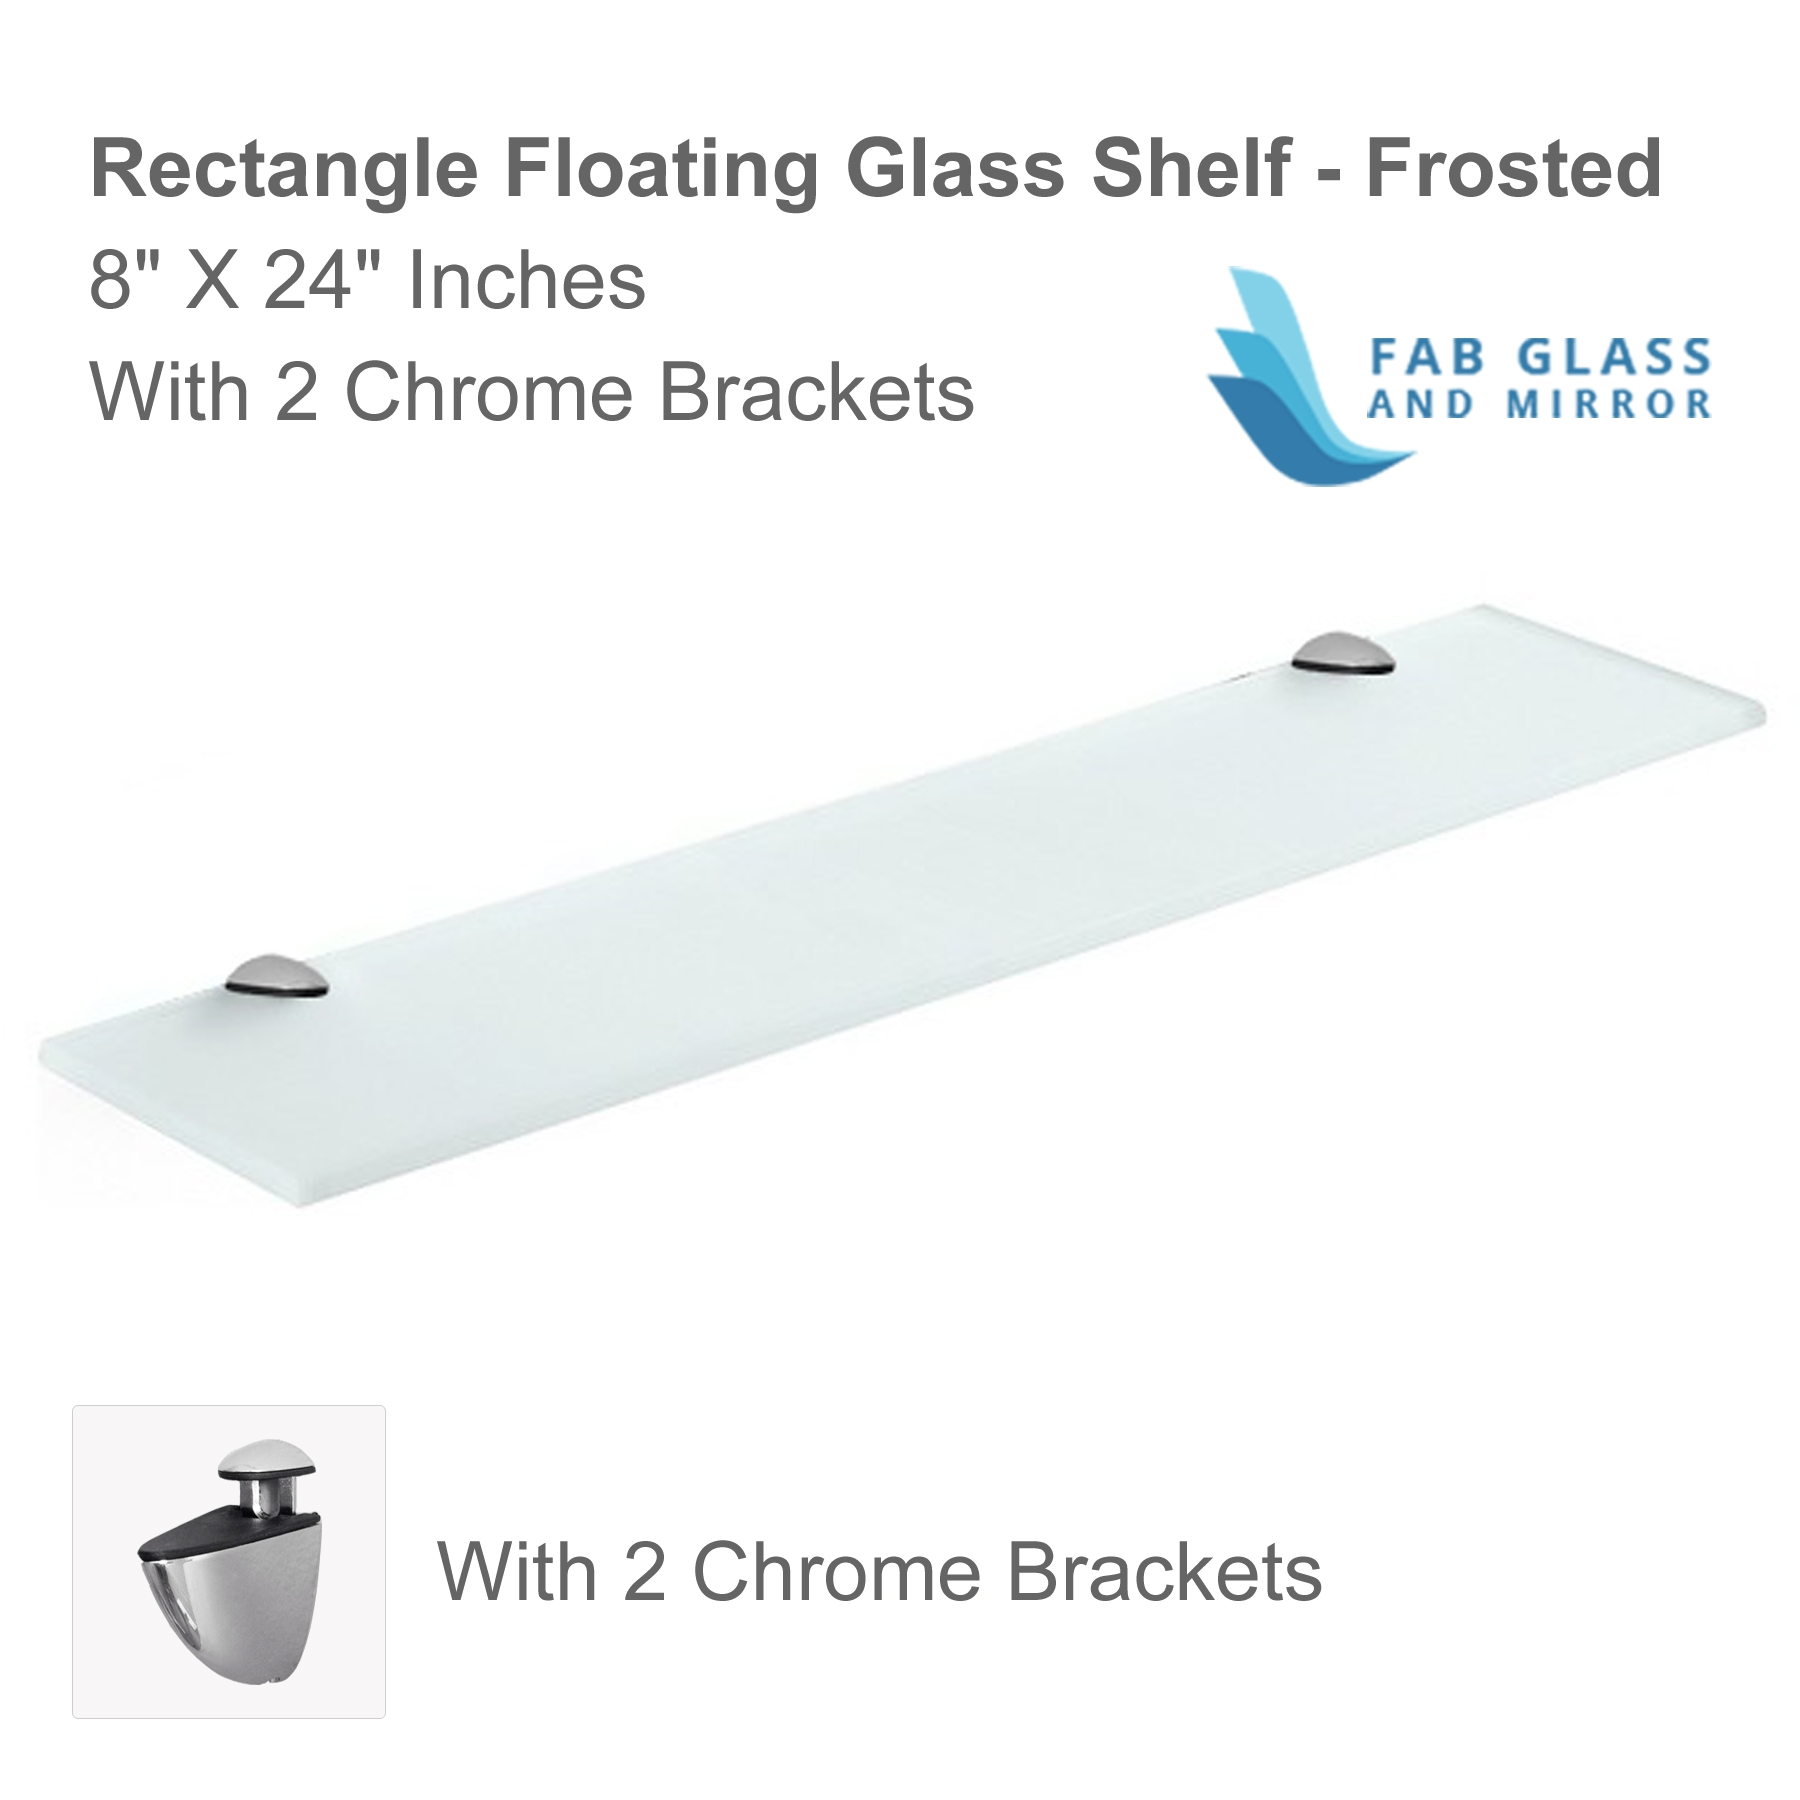 Floating Glass Shelves Corner 6×6 Inch With Chrome Brackets Clear For Frosted Glass Shelves (View 3 of 12)